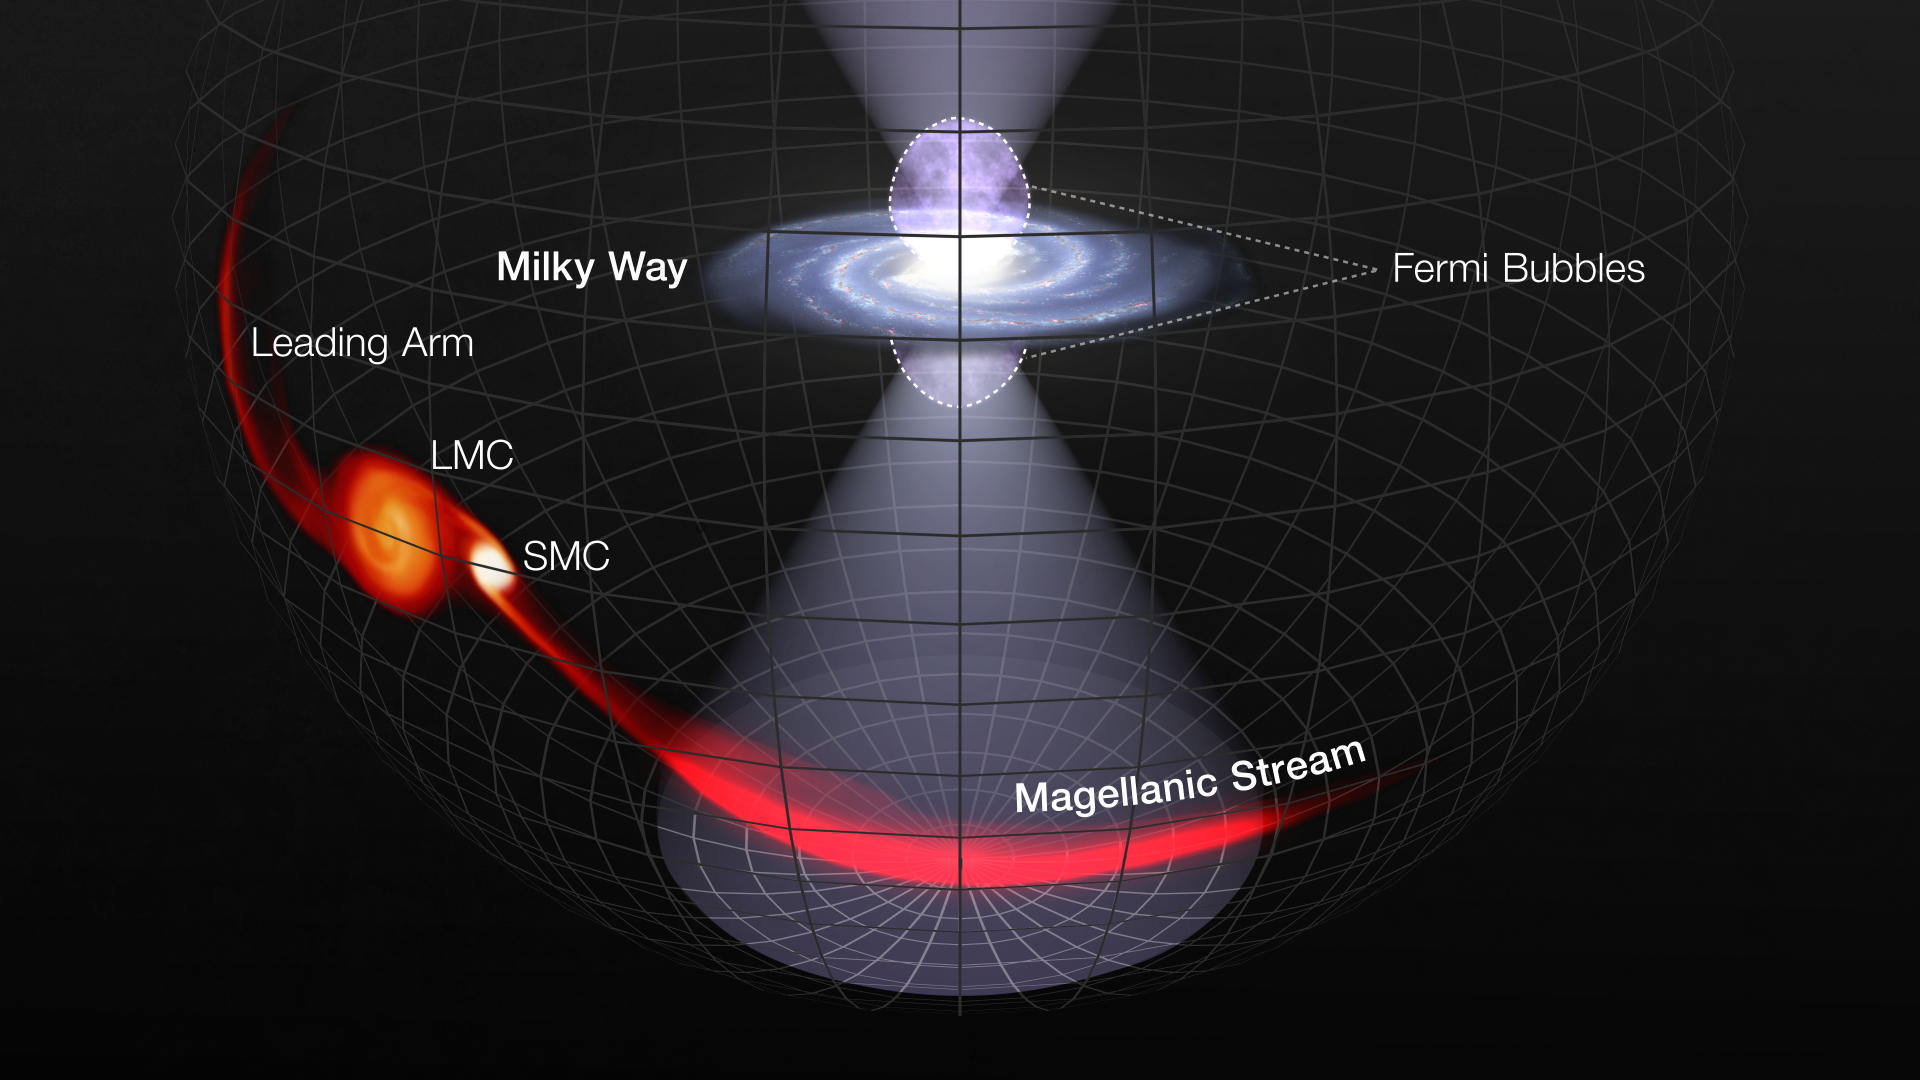 Cataclysmic flash from supermassive black hole at center of Milky Way lit up vast stream of gas far beyond our galaxy